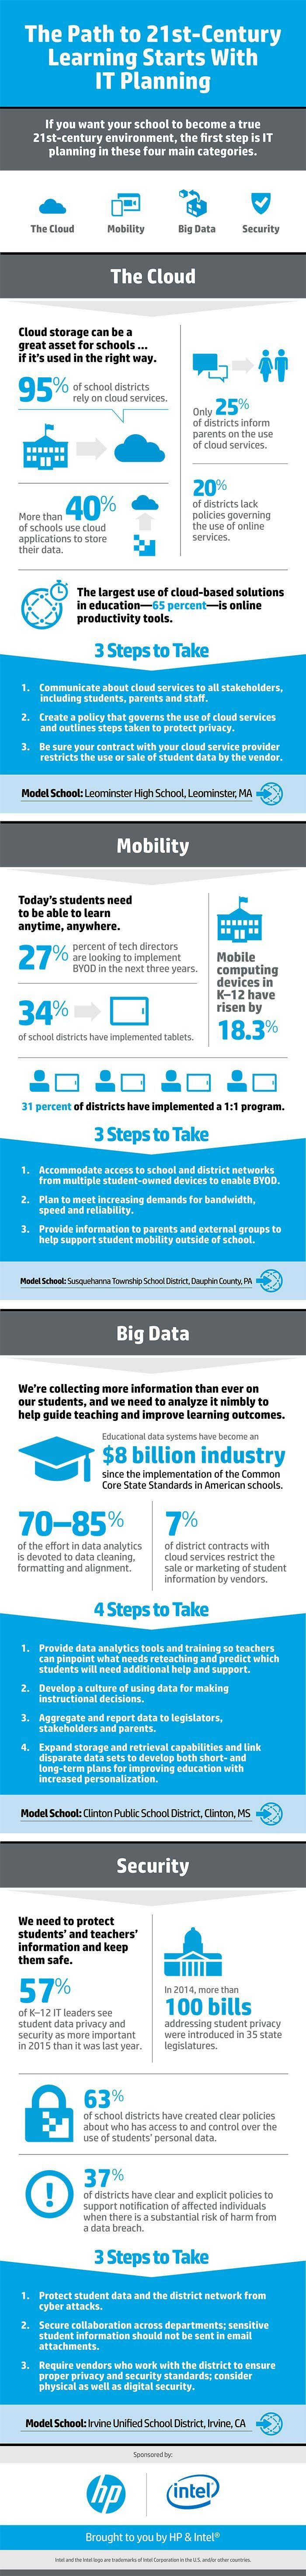 21st Century Learning Starts With IT Planning Infographic